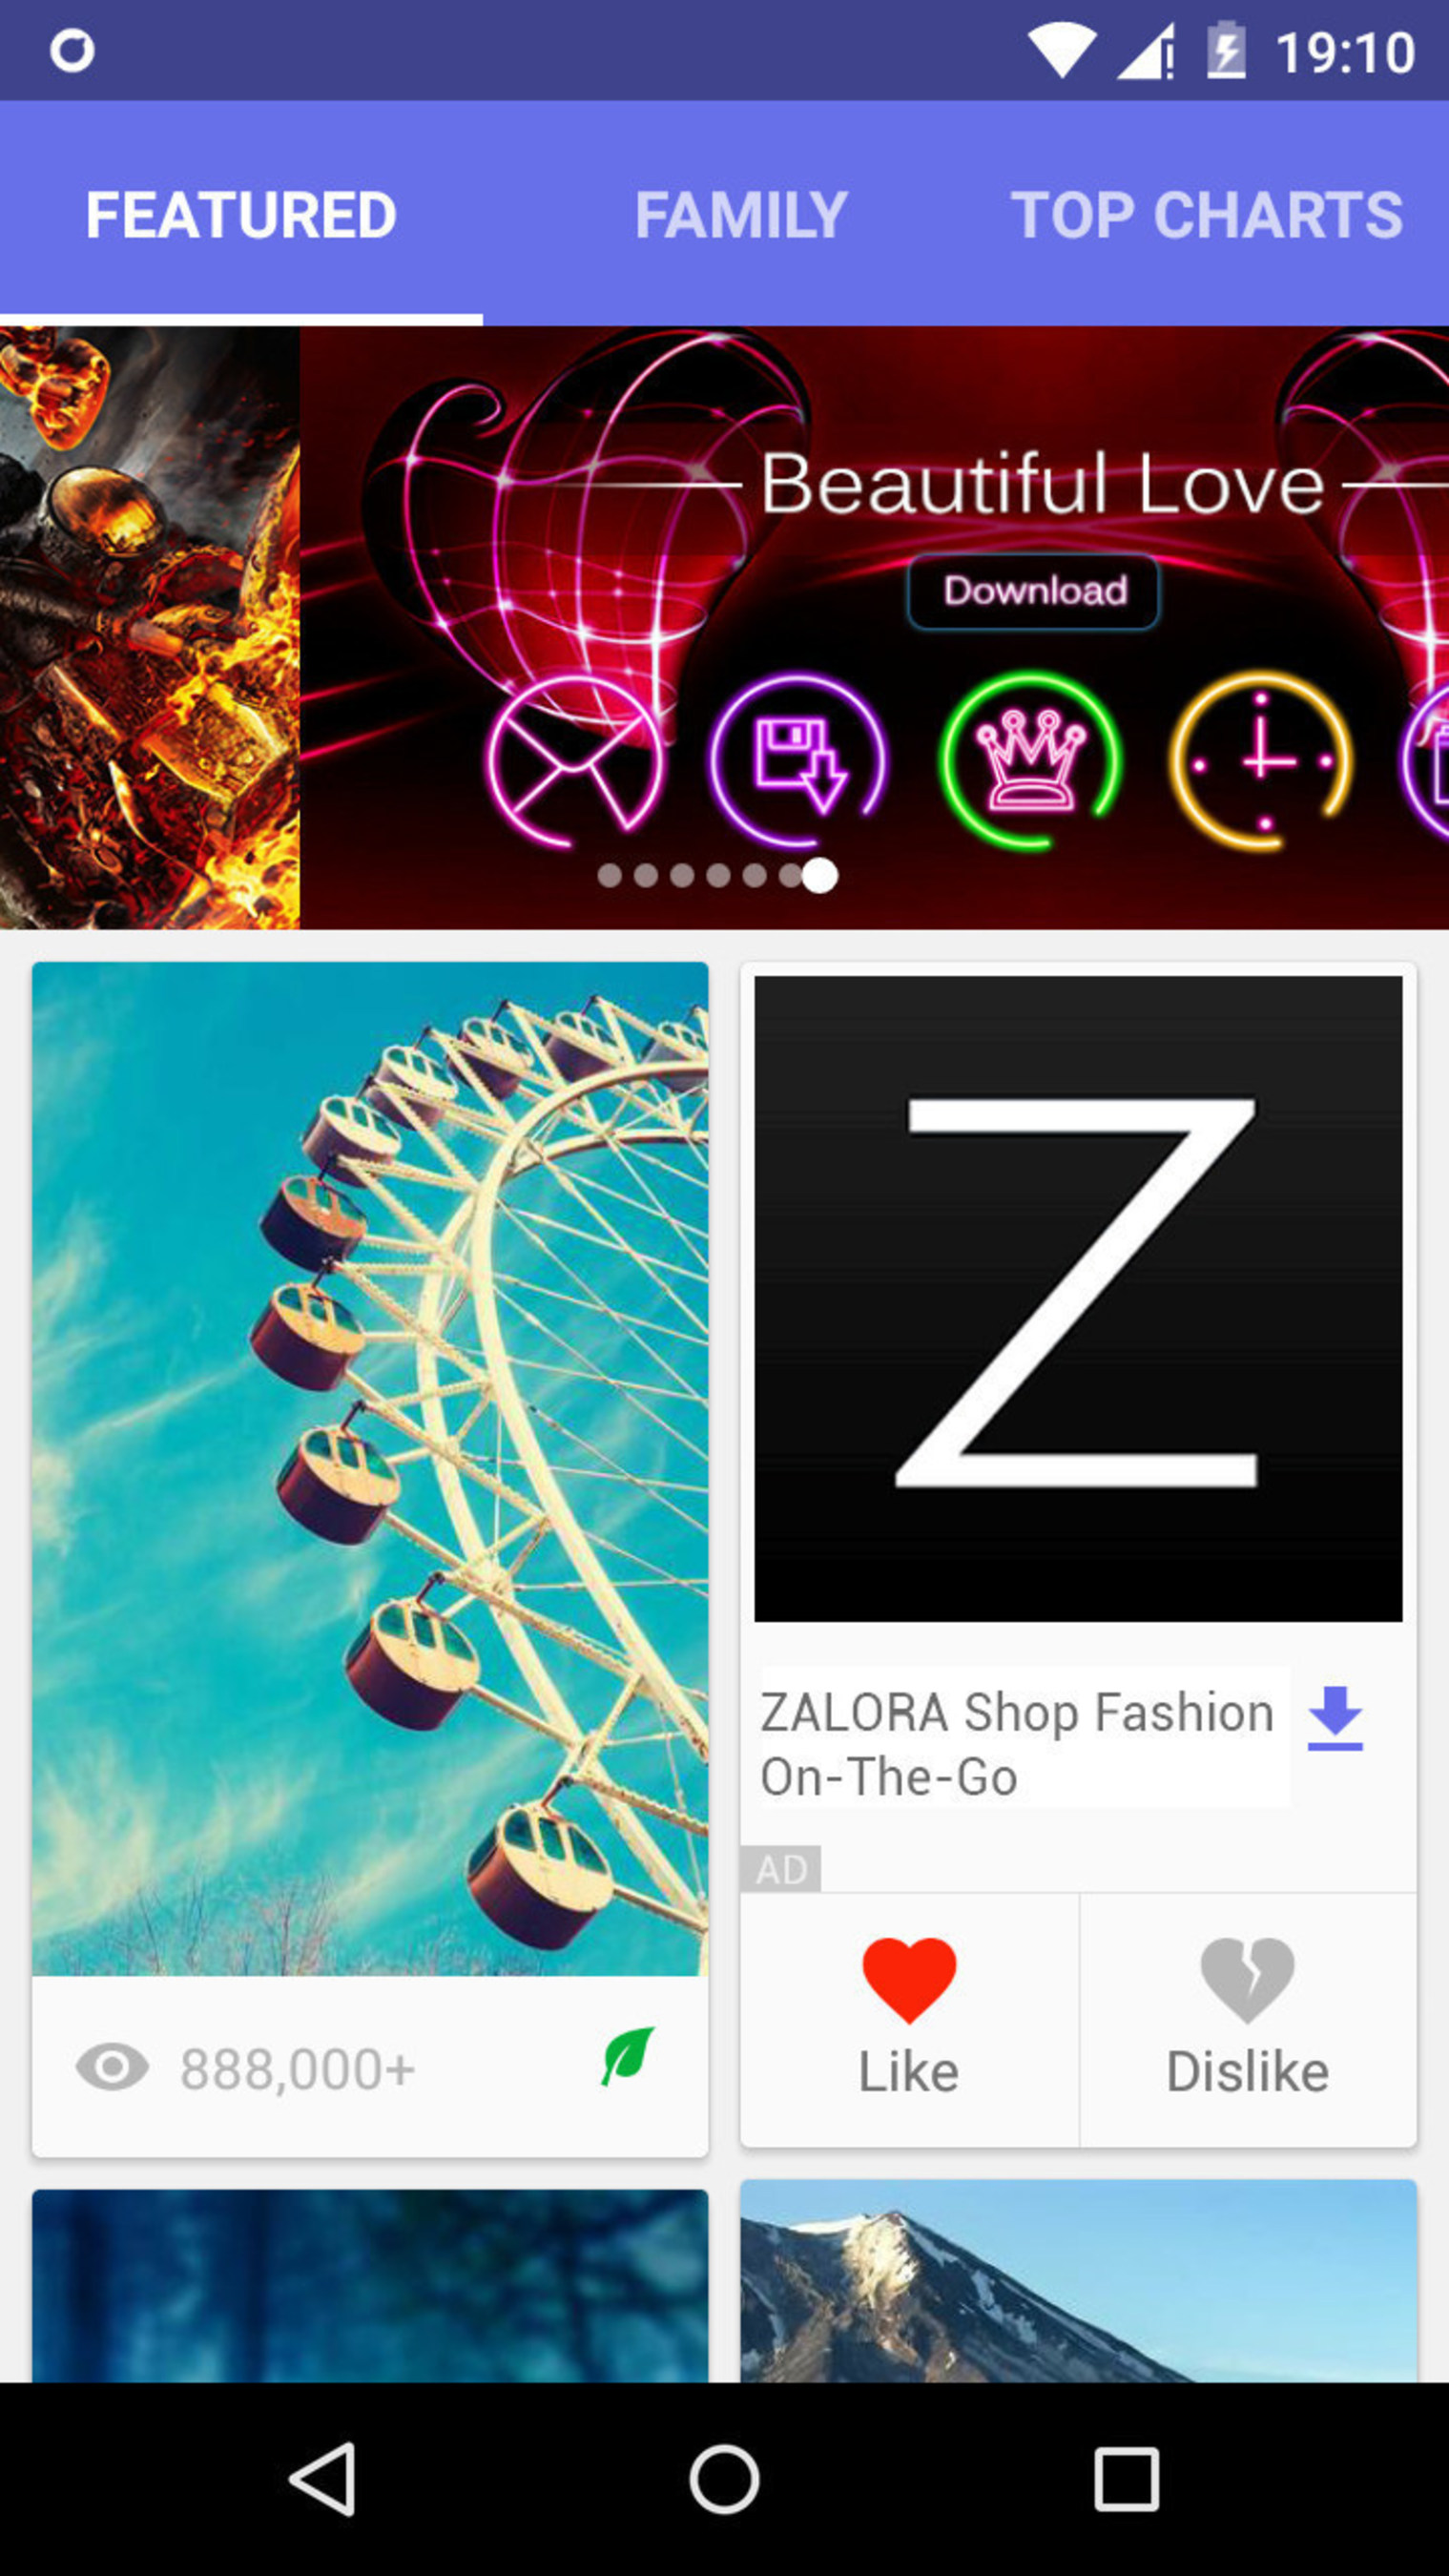 glispa's gNative Native Advertisement for Zalora is non-intrusive & in the flow of a content feed.